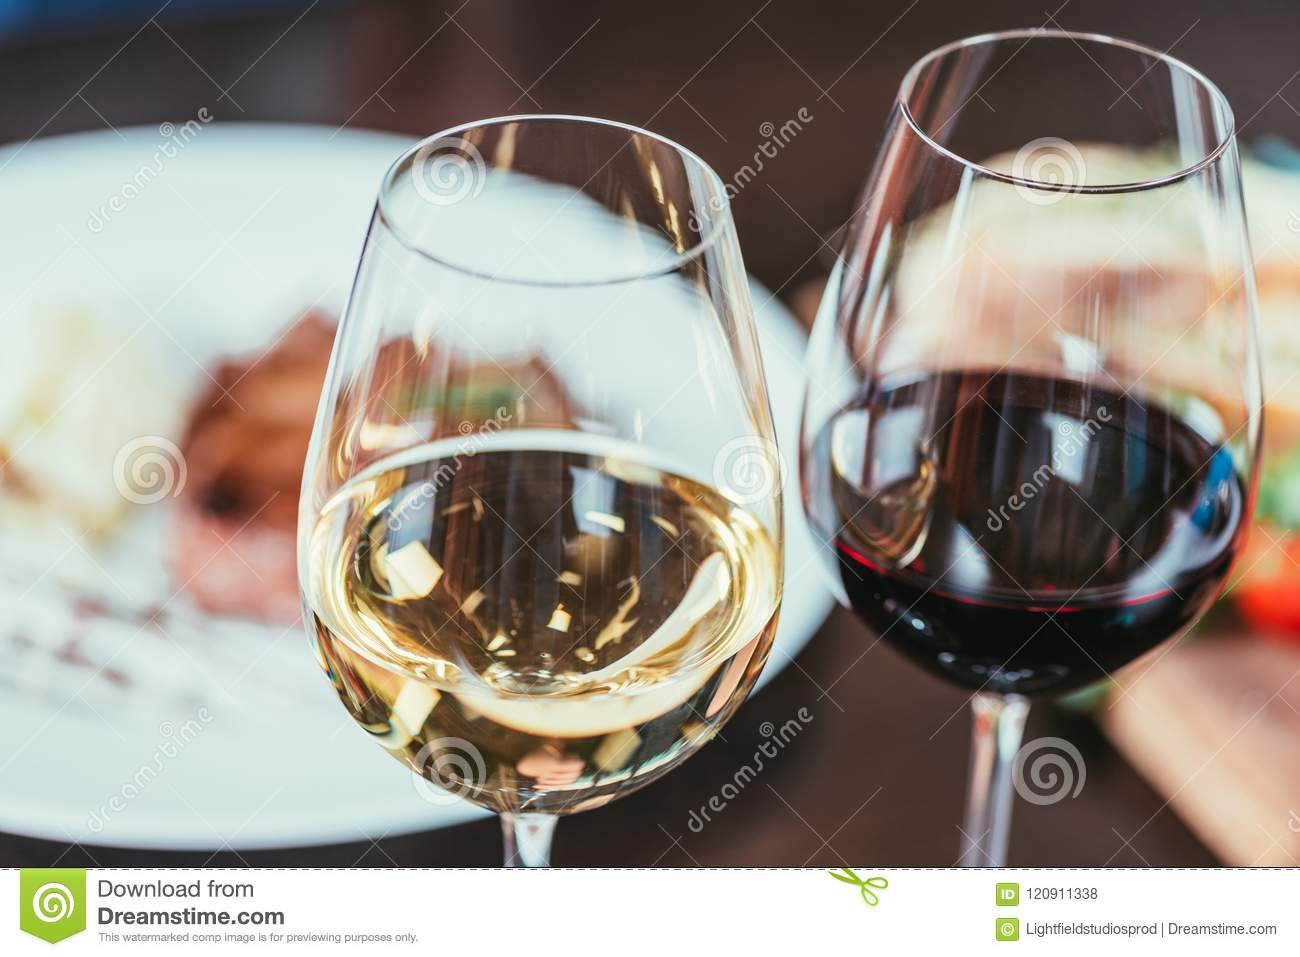 close-up view of two glasses with red and white wine on table